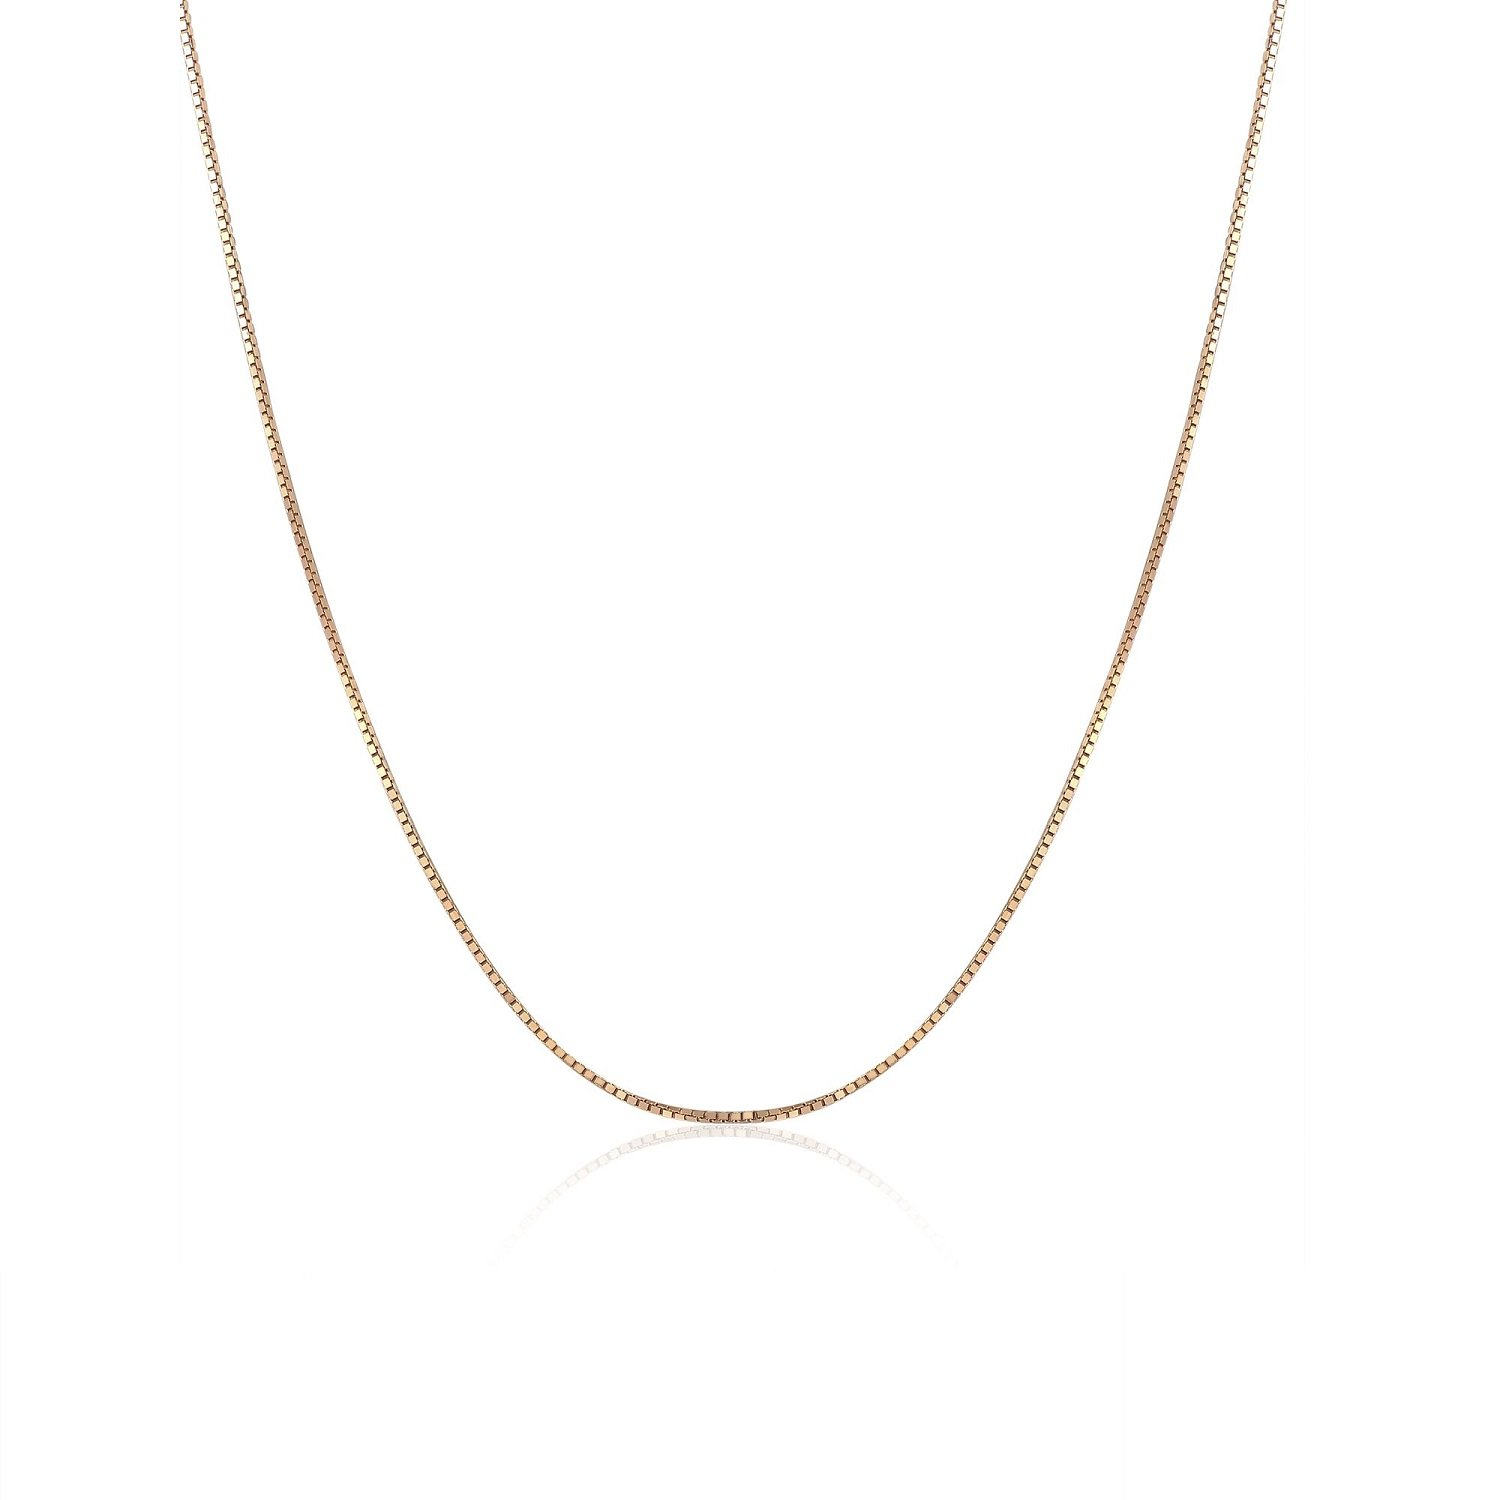 MaBelle 18K Italian Gold Classic Venetian Box Chain Necklace (16, 18) A00881N_KR